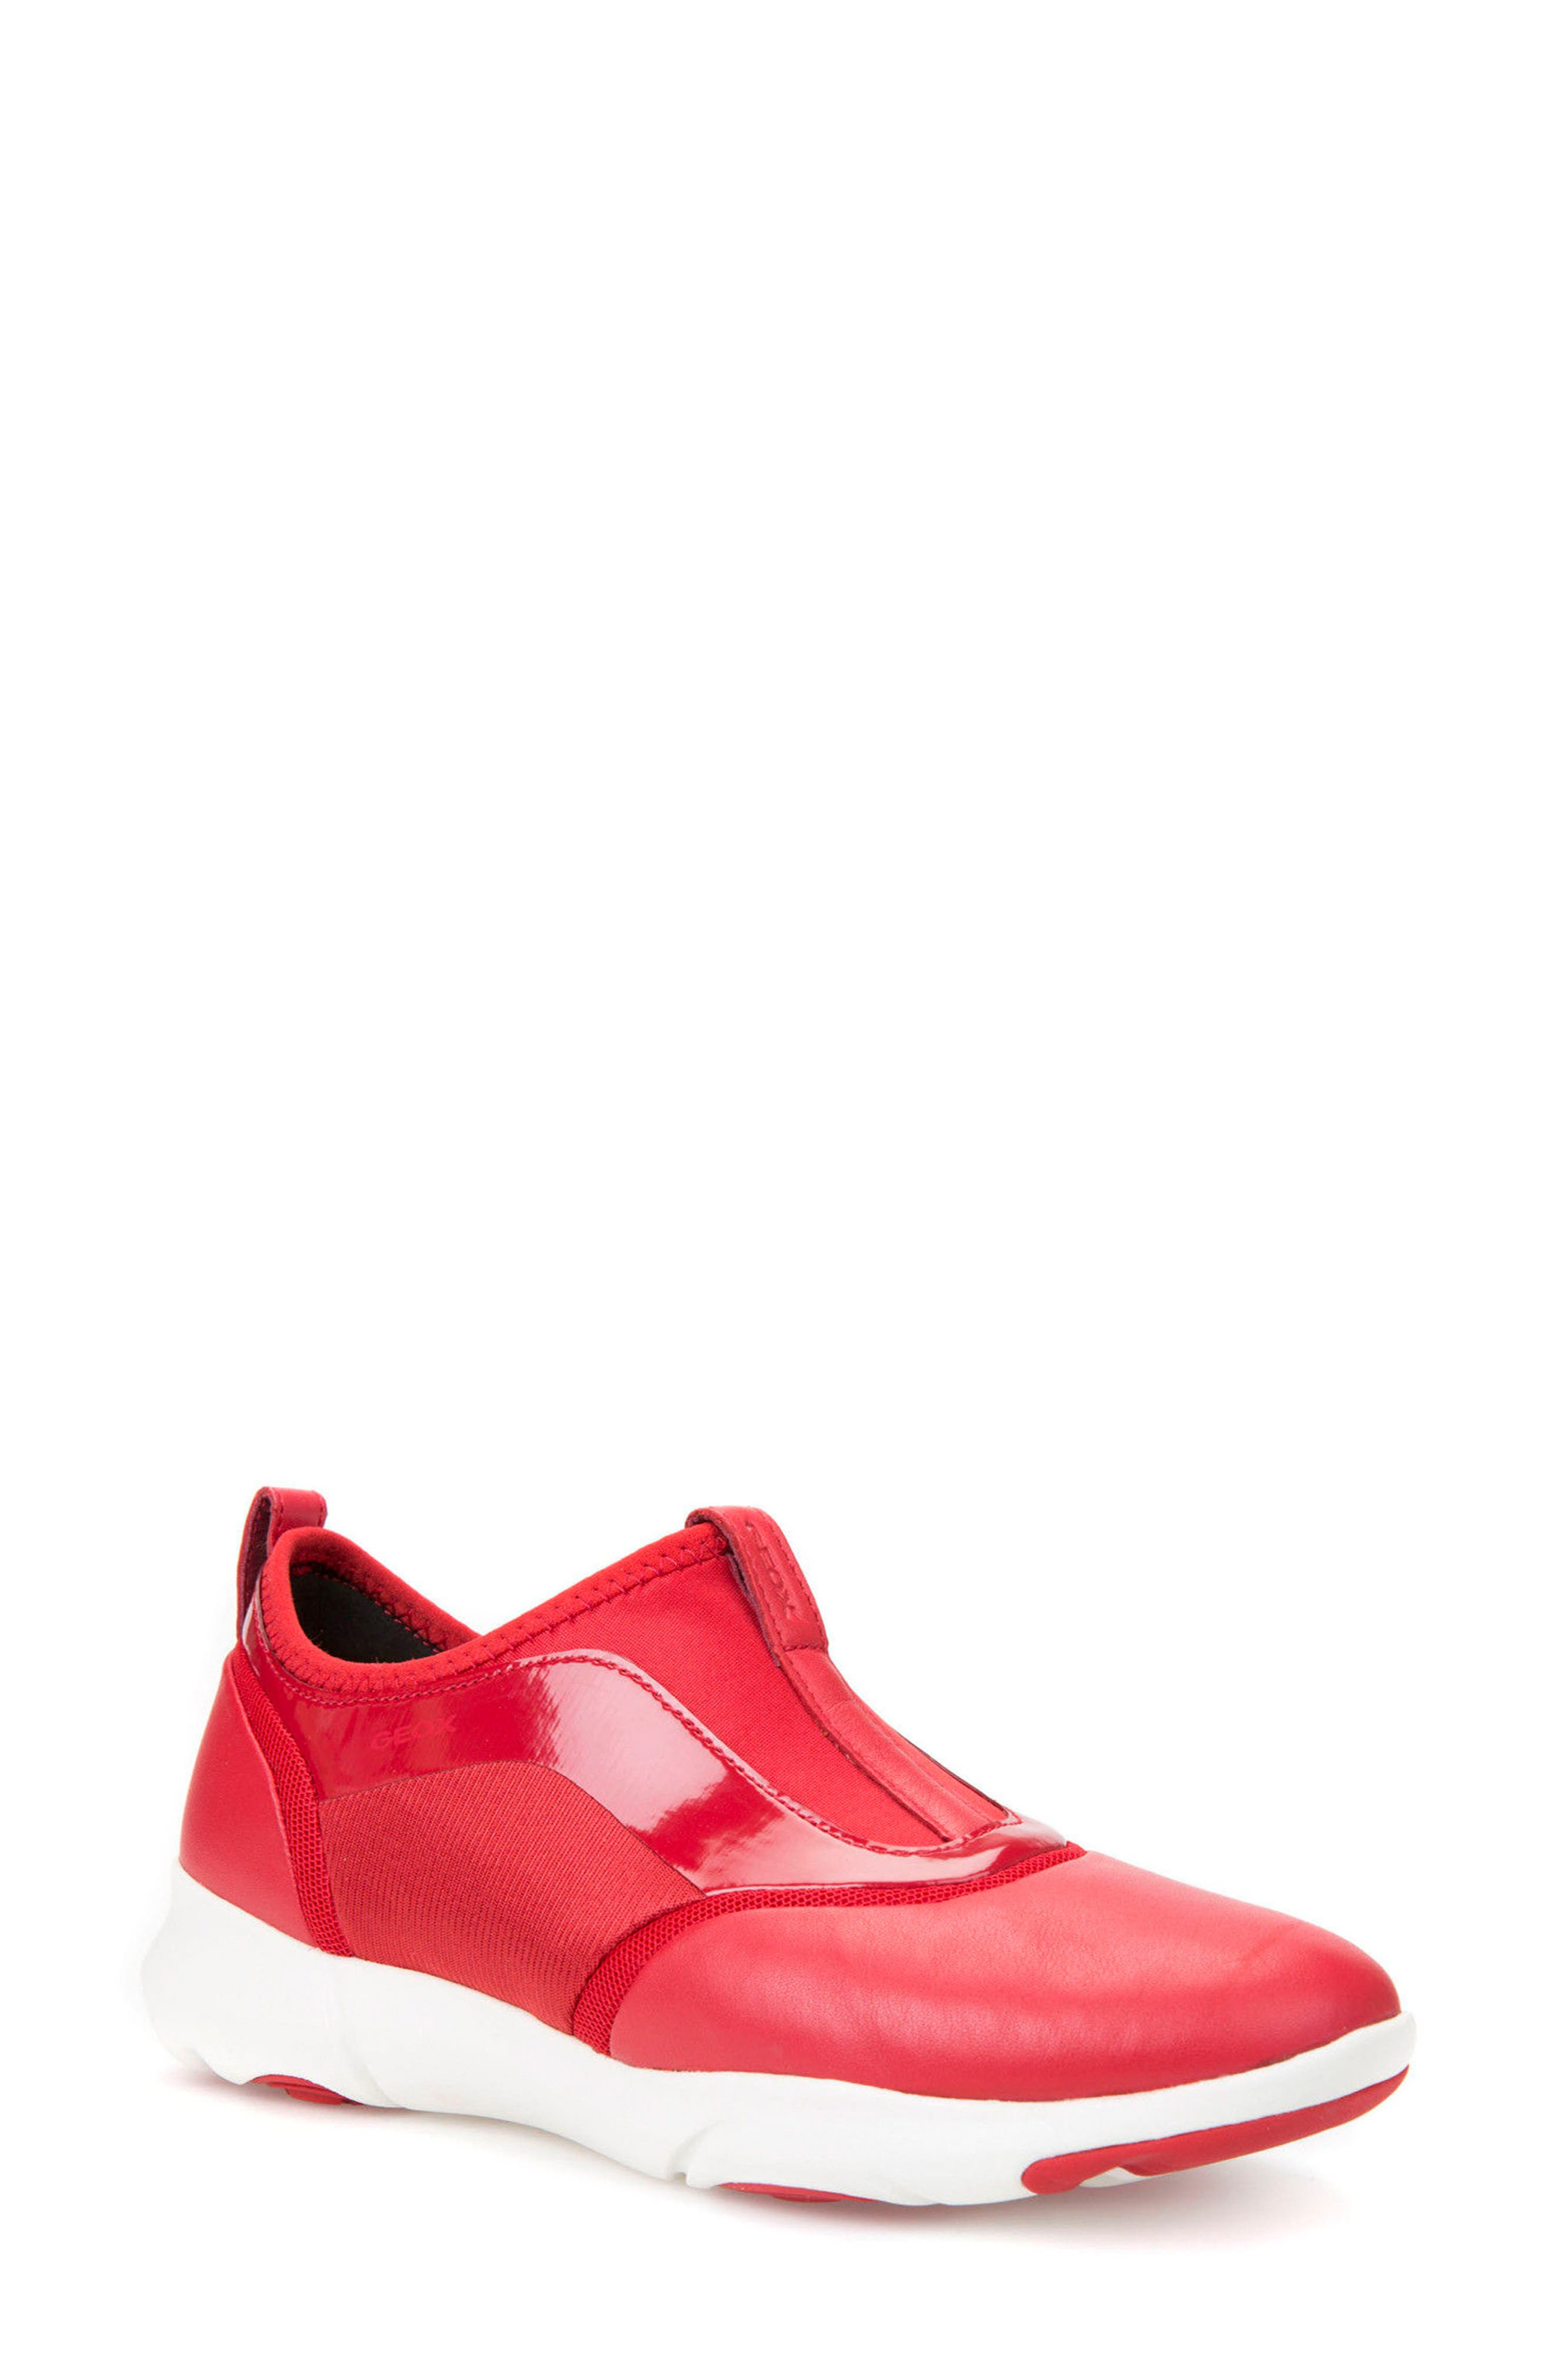 Nebula S Slip-On Sneaker,                             Main thumbnail 1, color,                             Red Leather